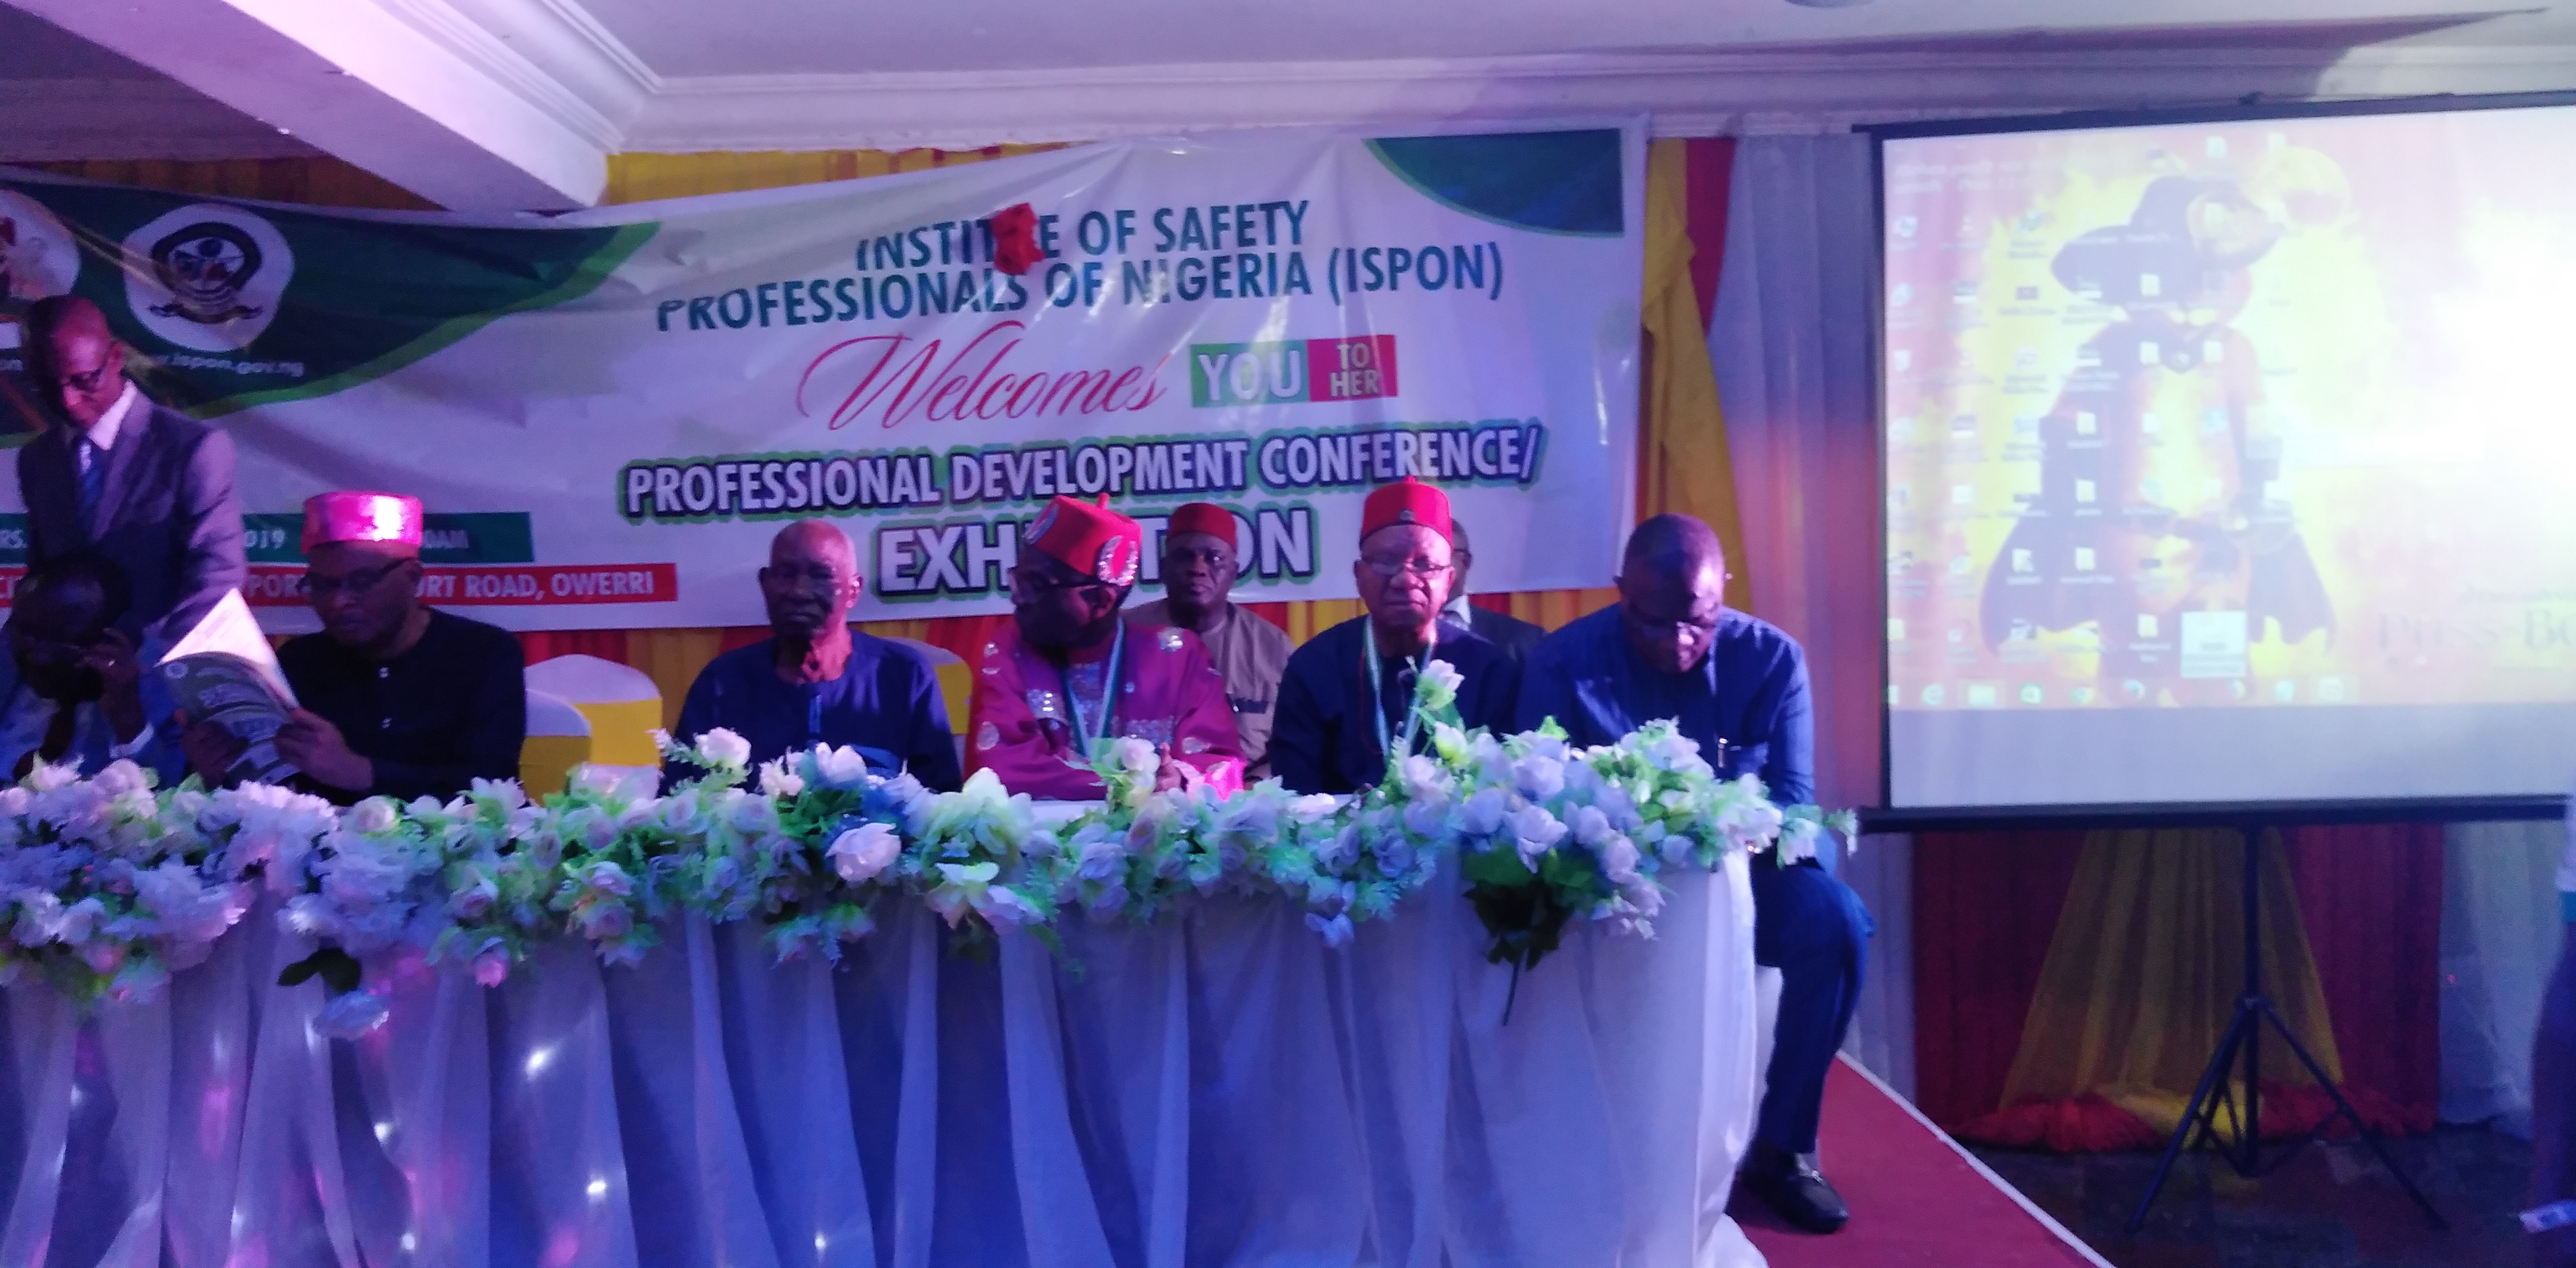 BREAKING: ISPON Inducts Over 300 New Members